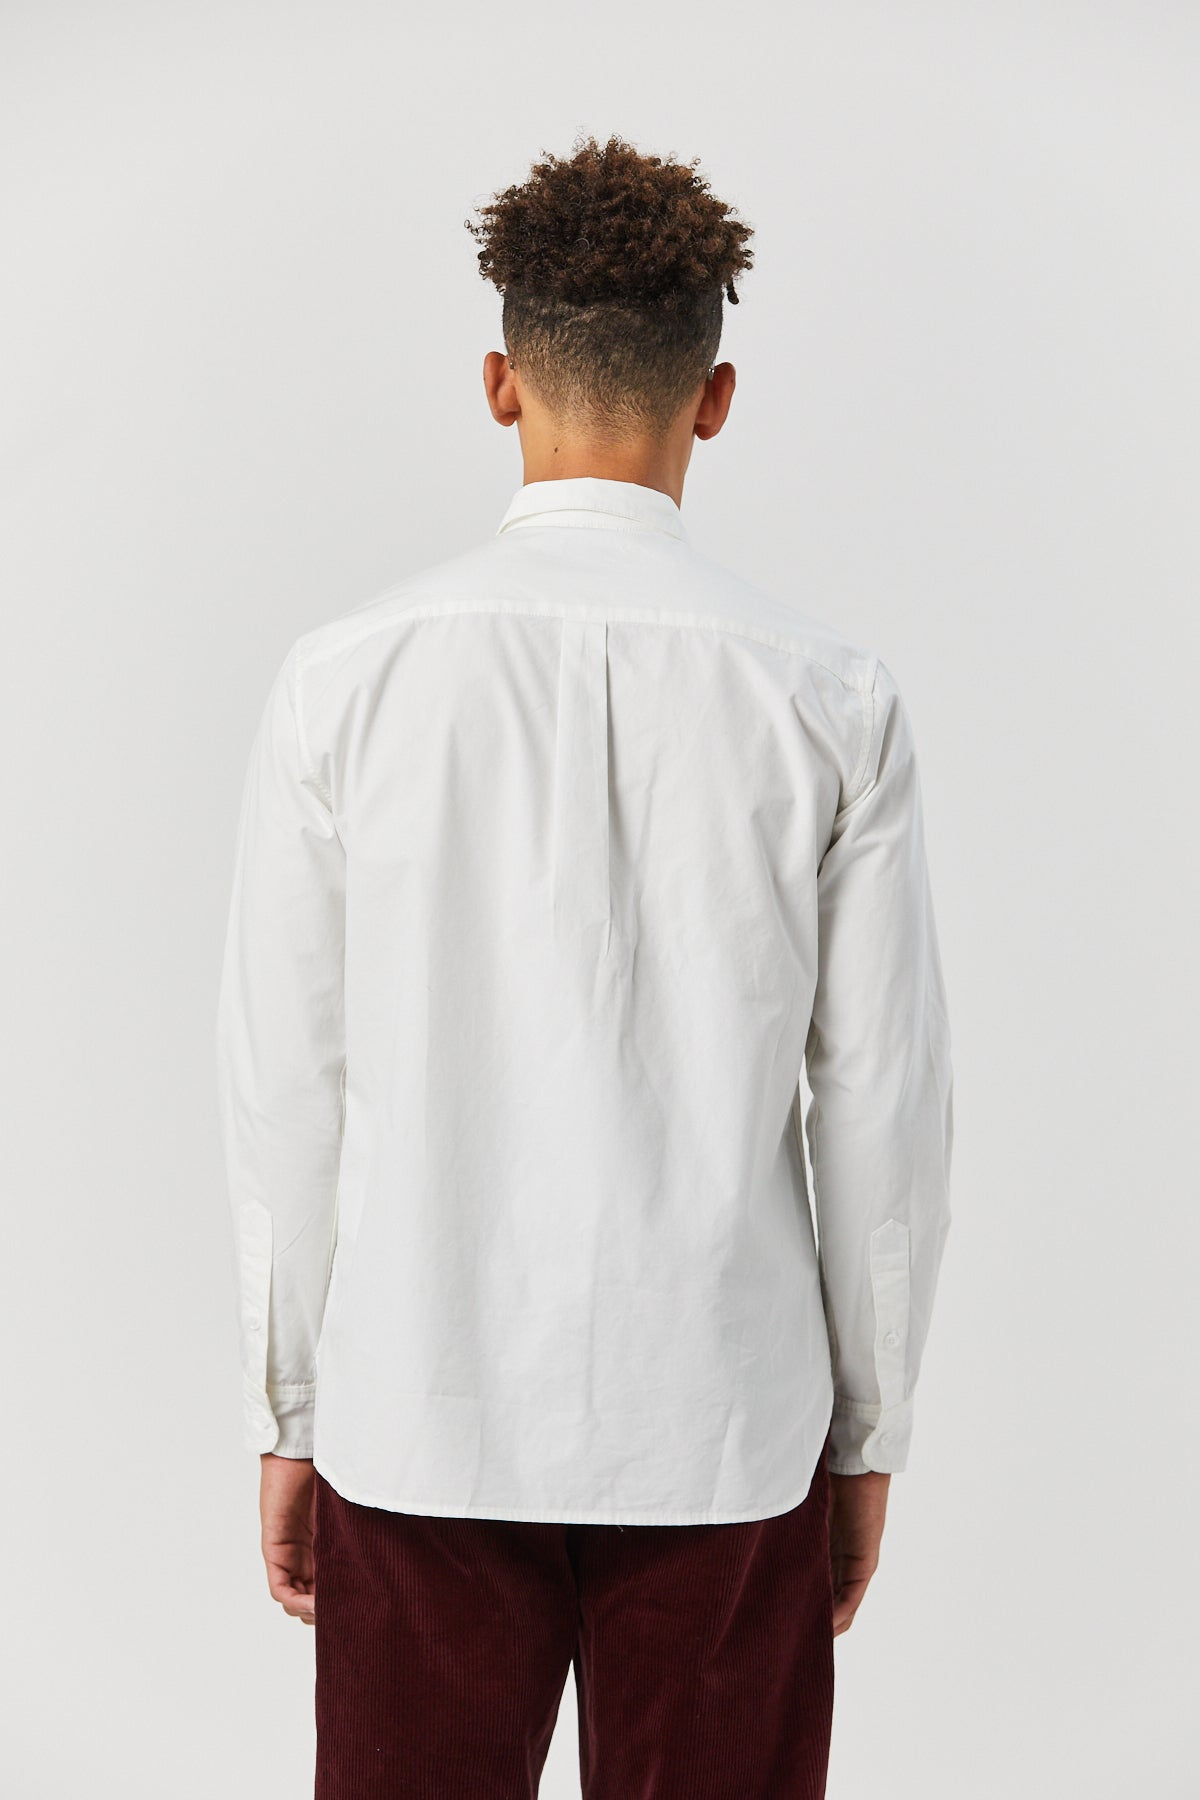 TYPEWRITER SHIRT IN WHITE - Fortune Goods